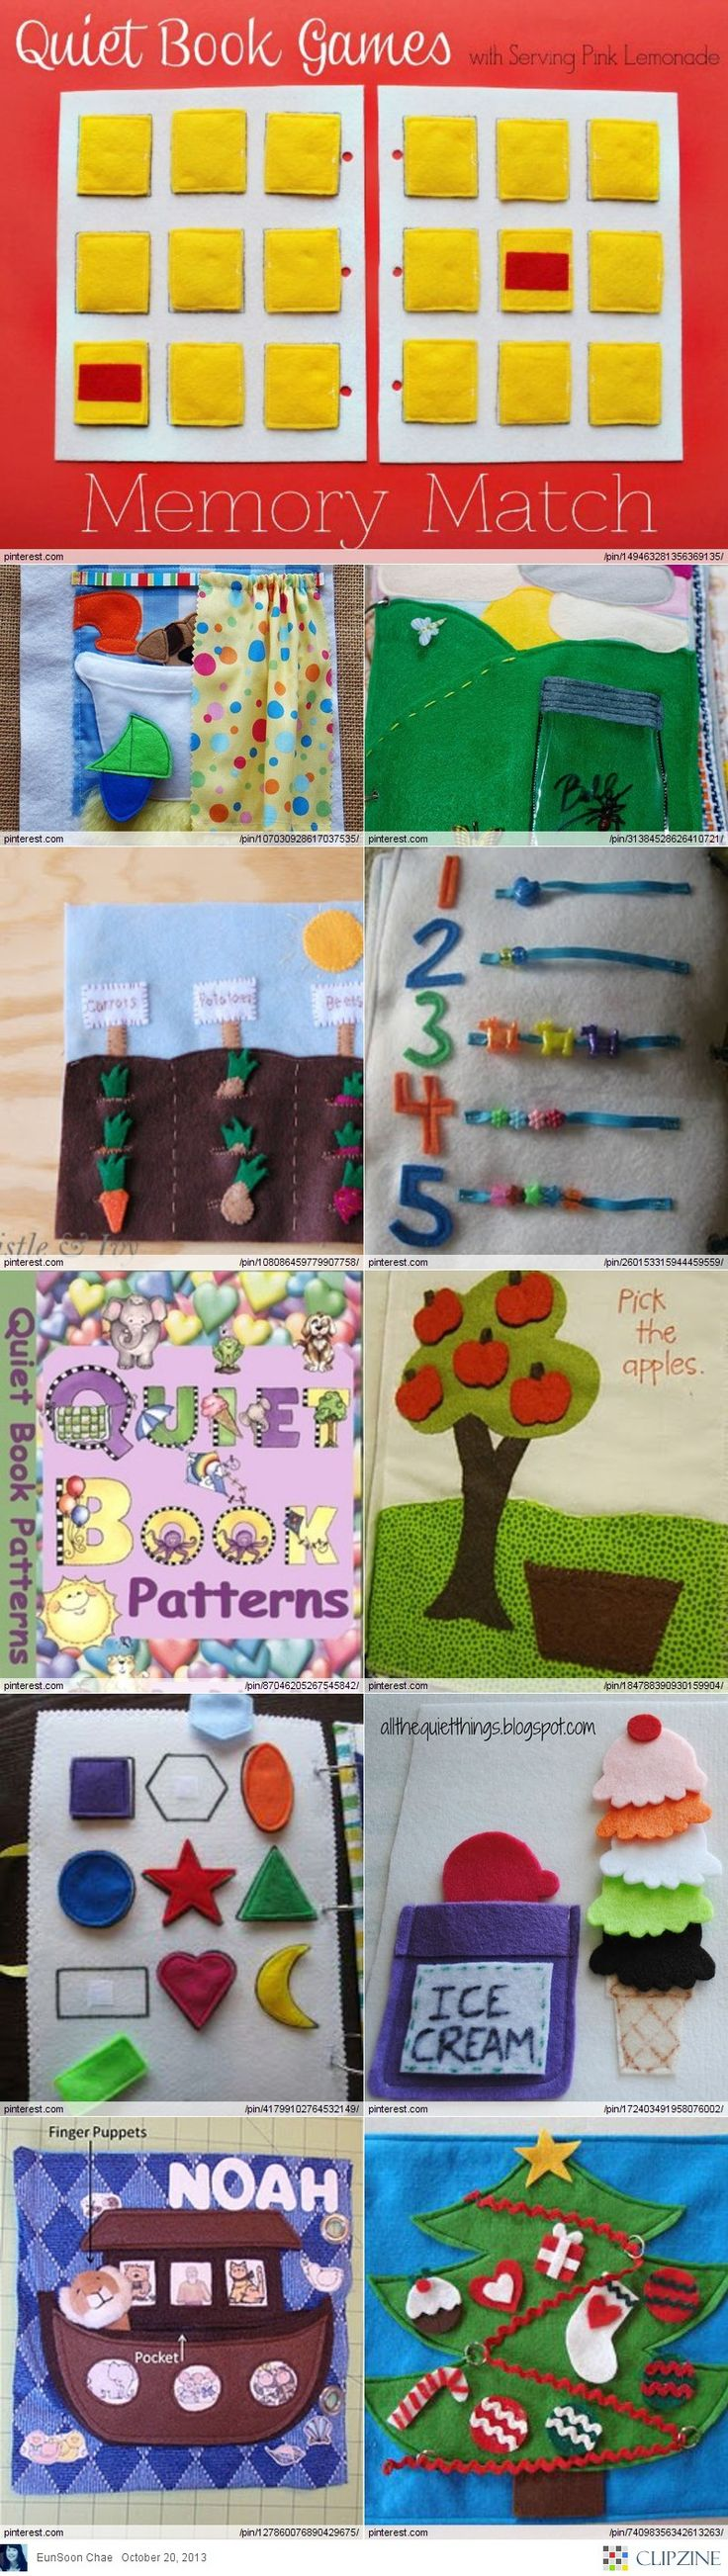 Quiet Book Cover Page Ideas : Best images about diy felt book ideas on pinterest